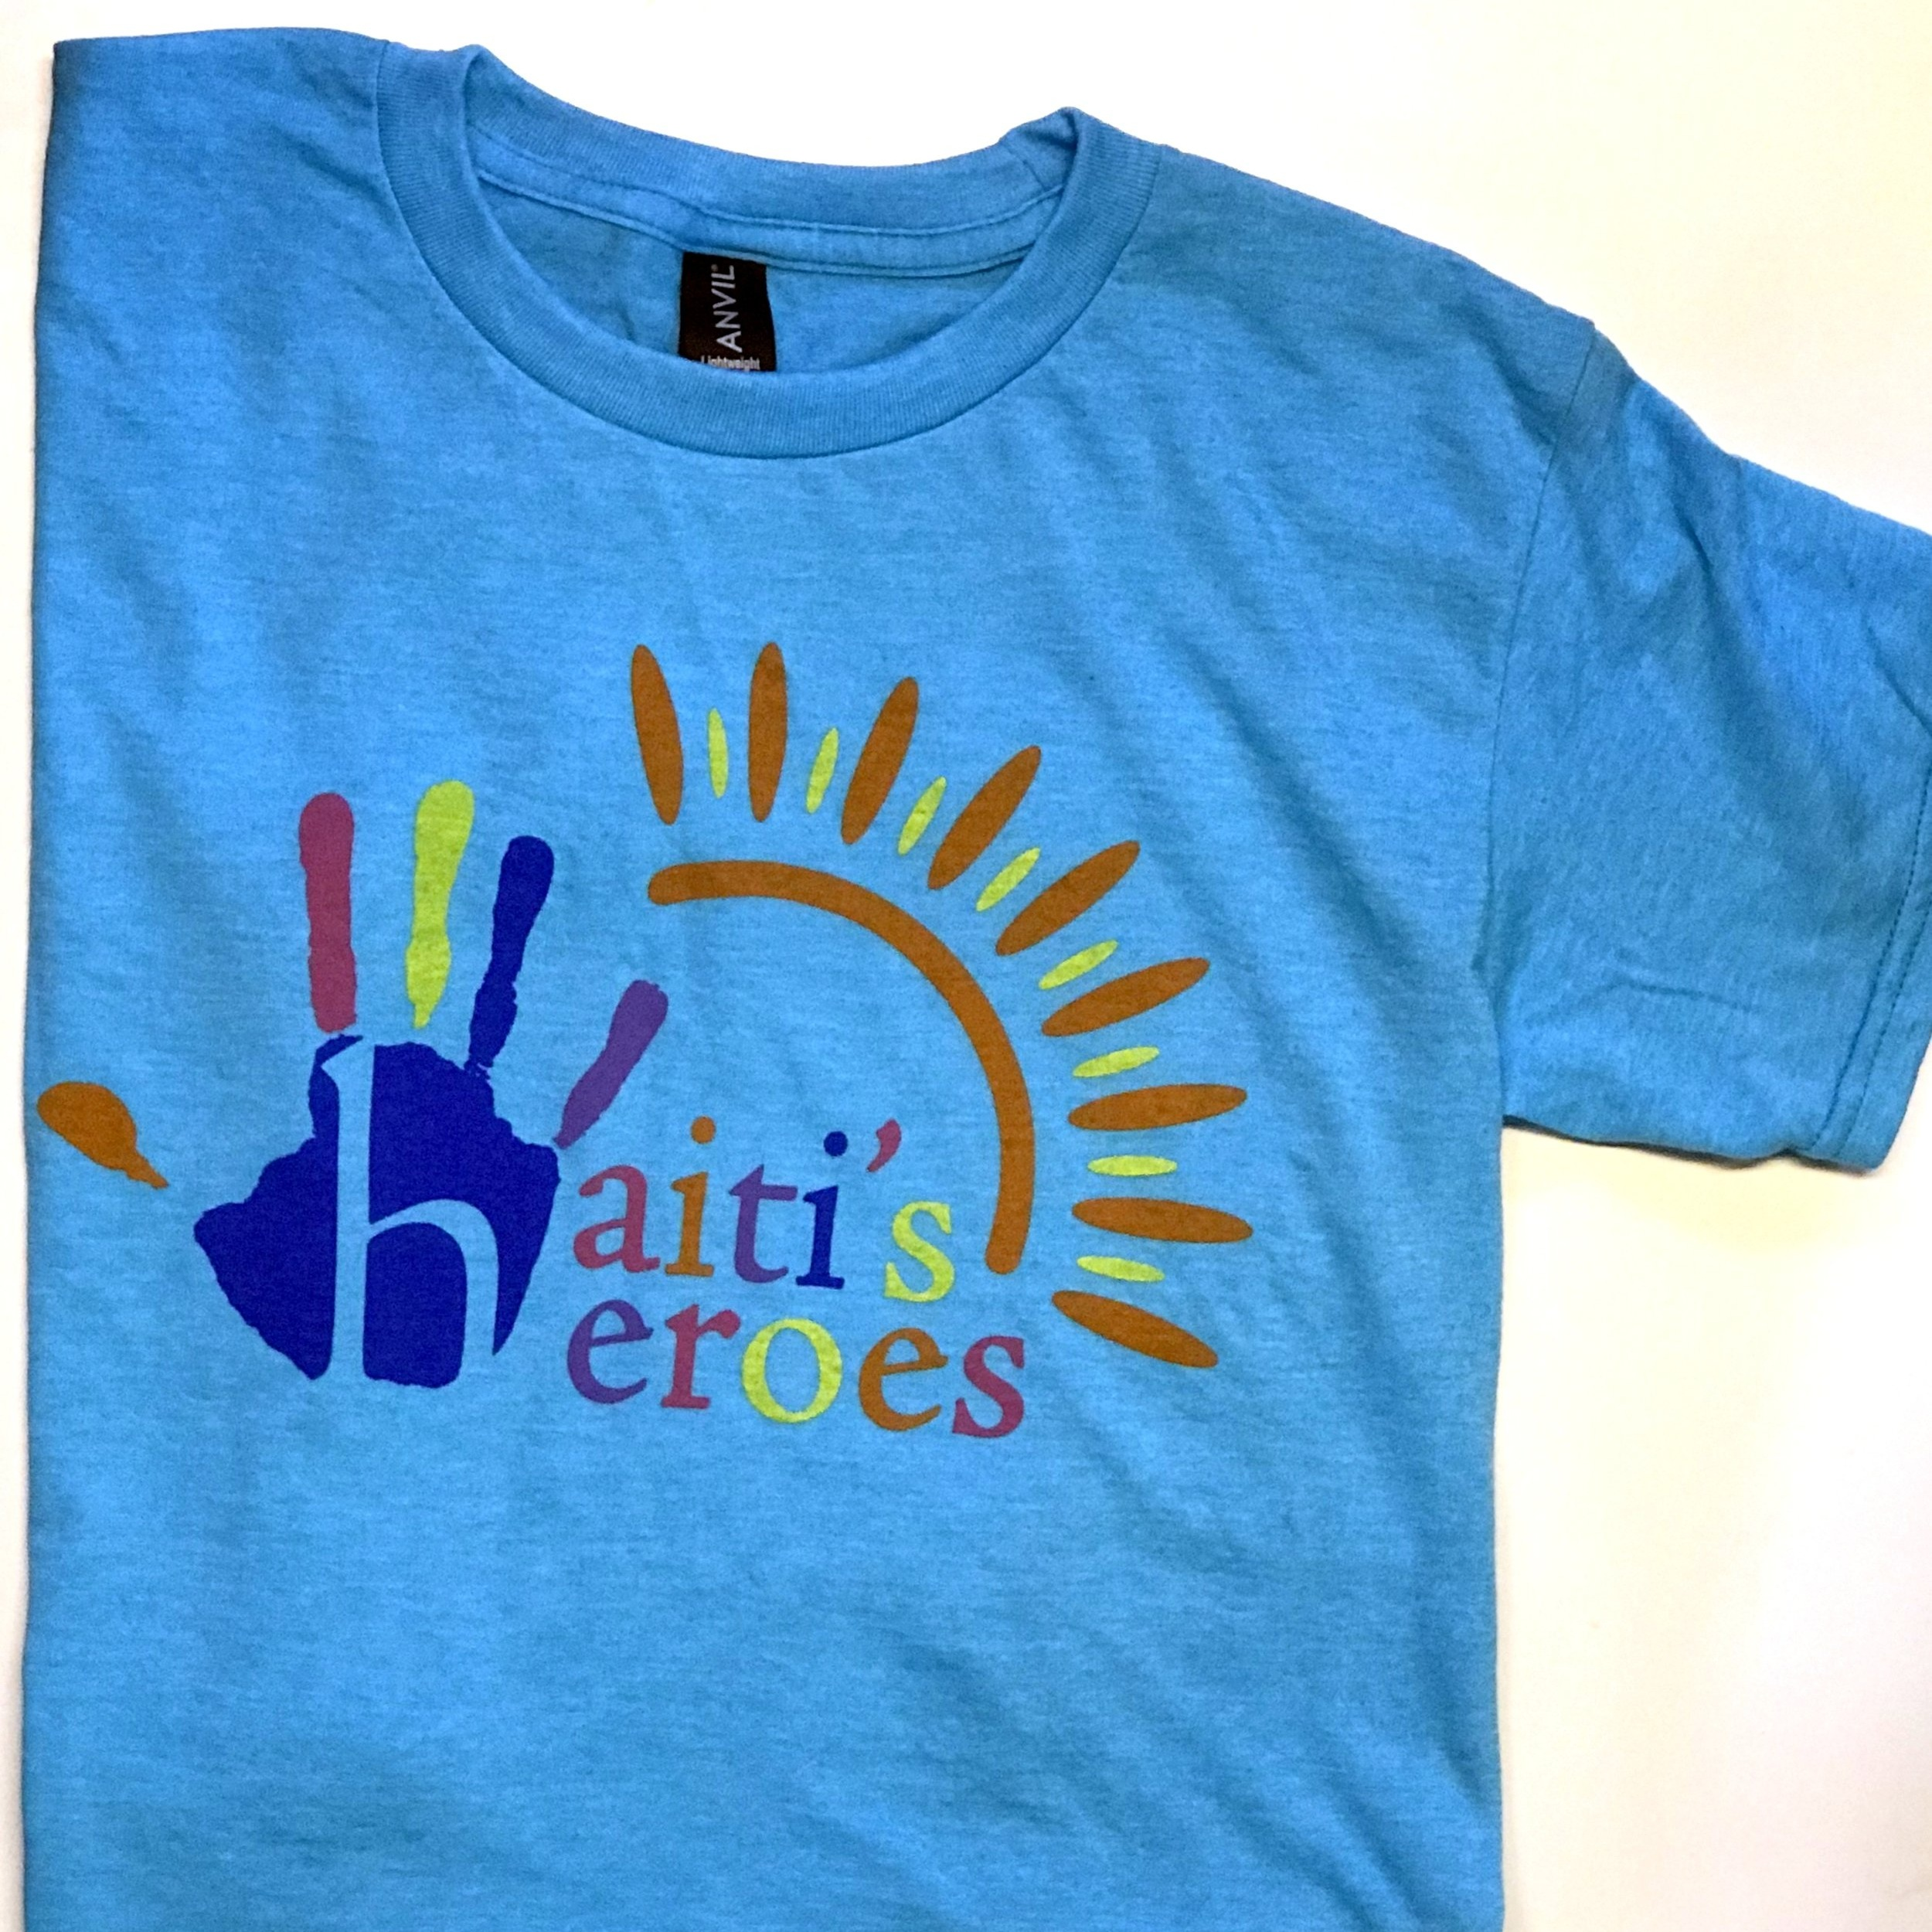 Haiti's Heroes Shirt - Youth sizes available!